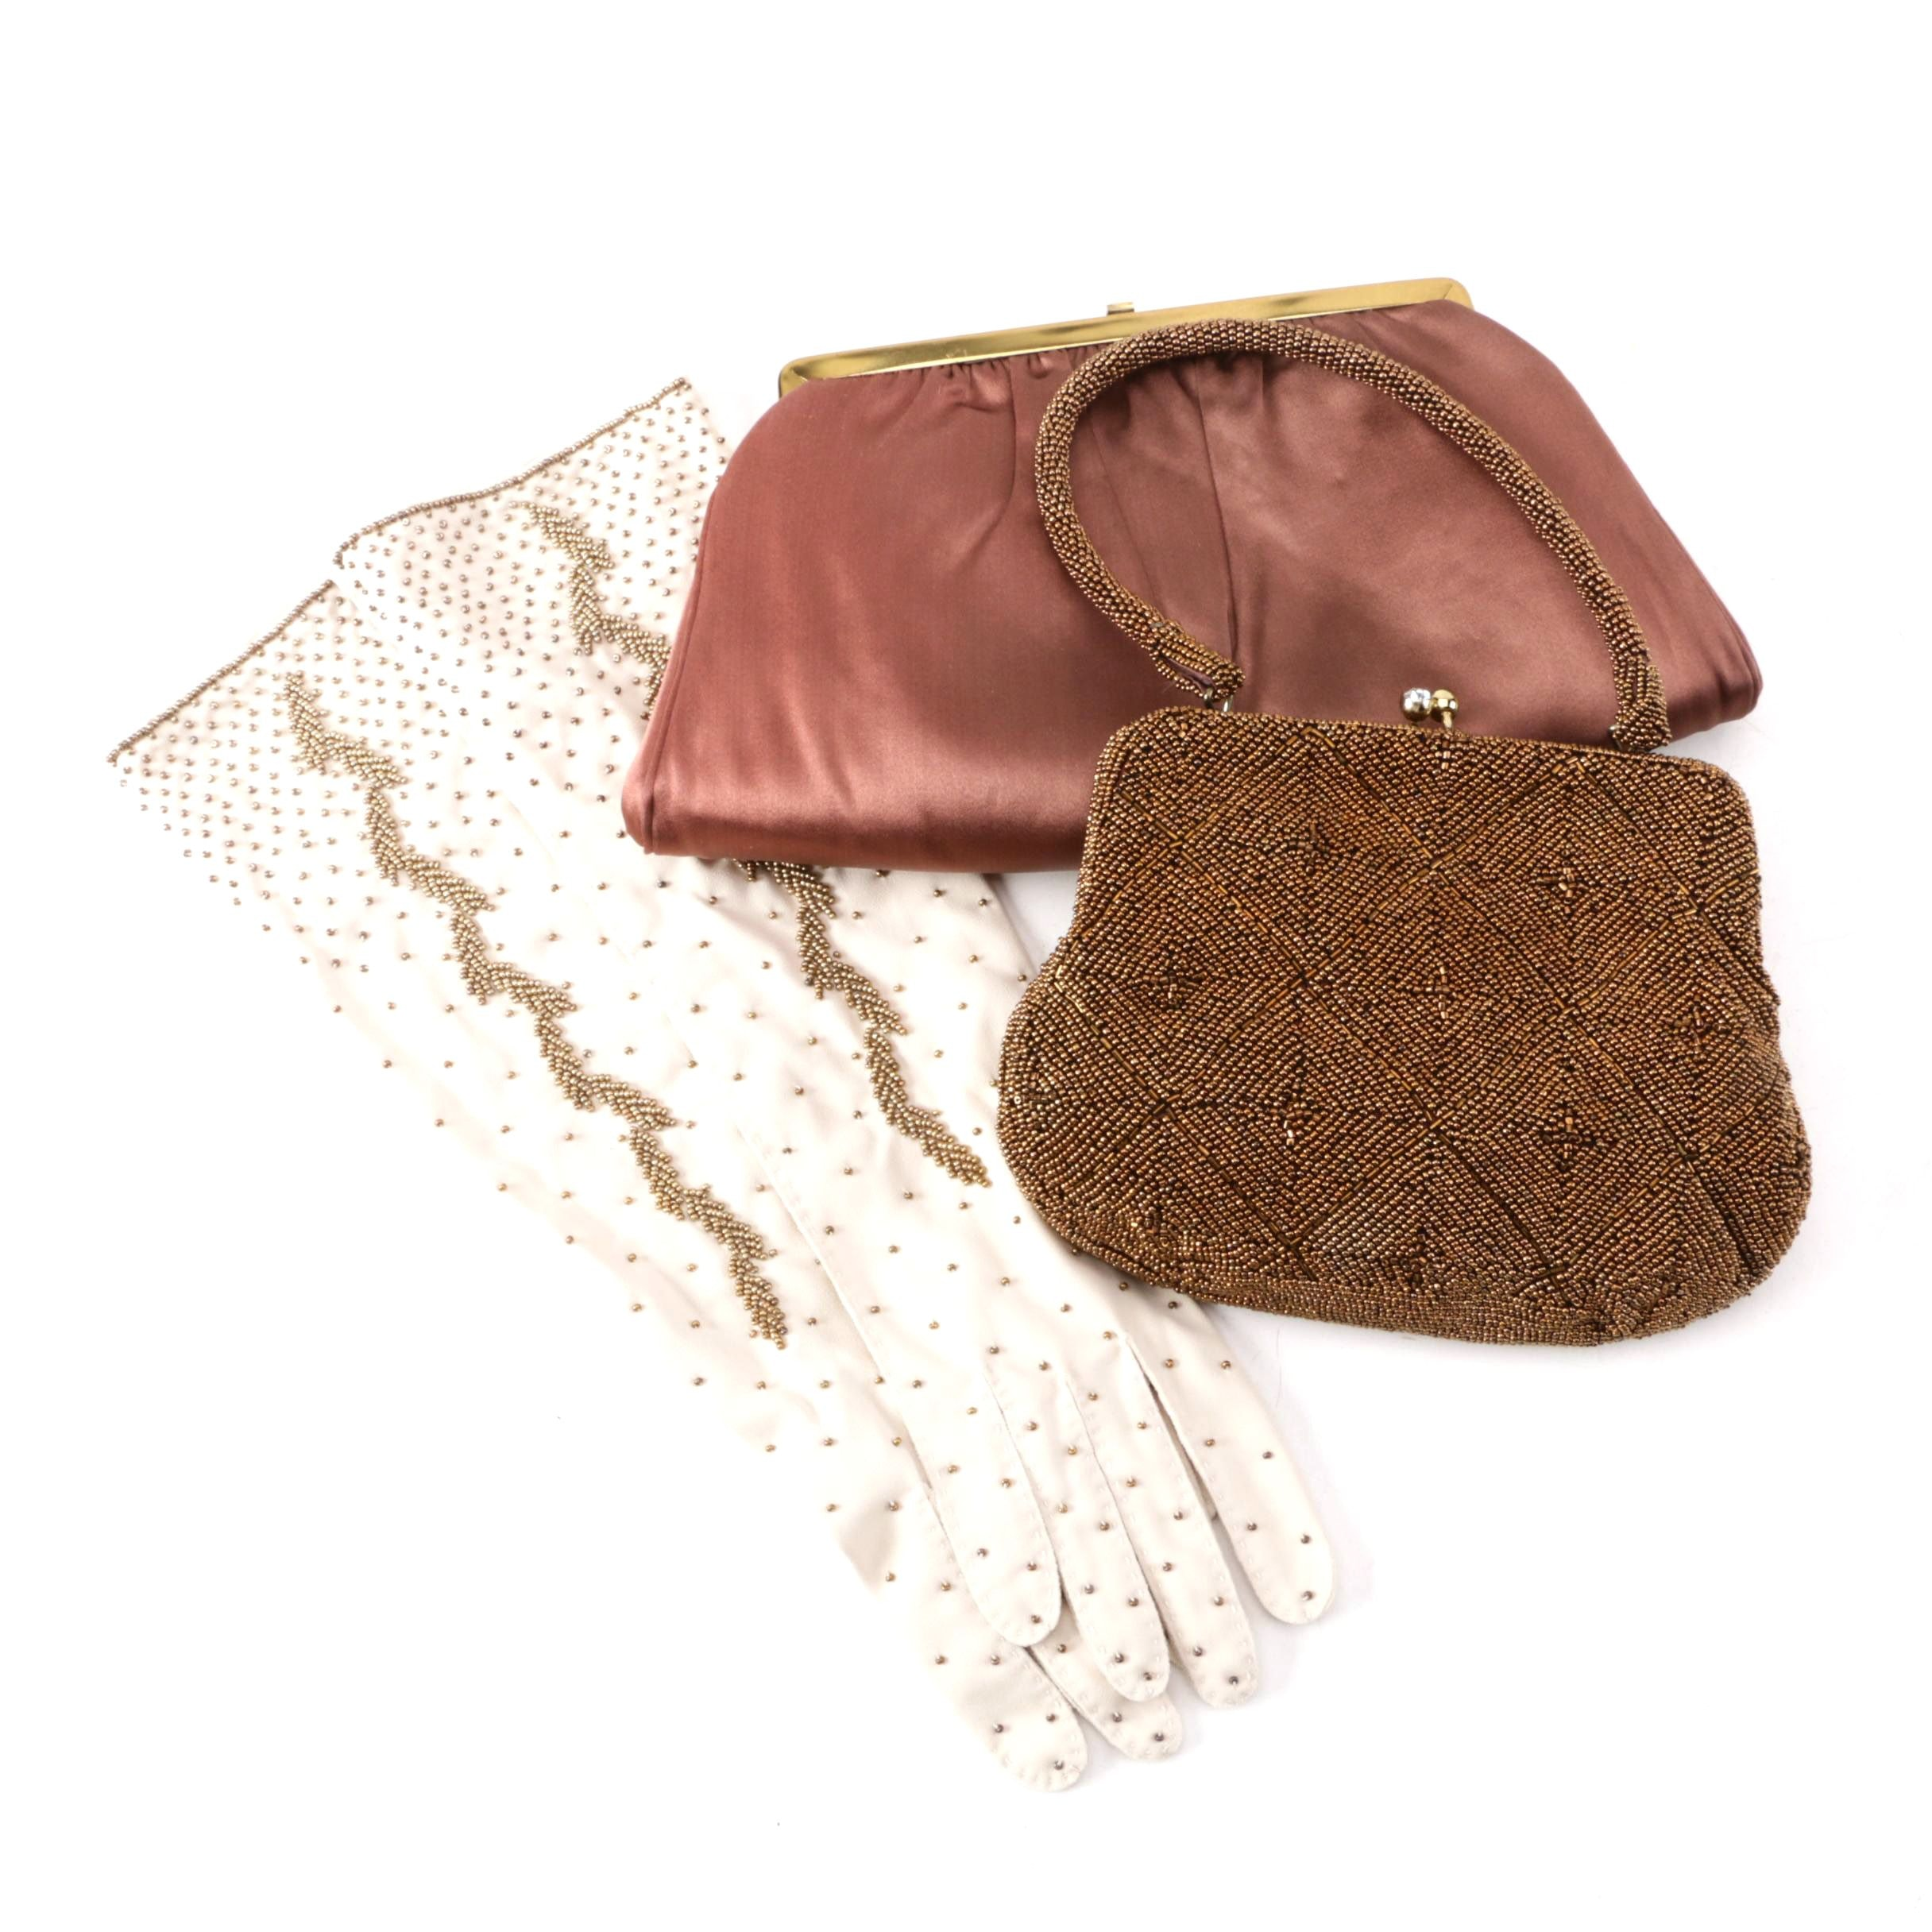 Vintage Gloves, Beaded Bag by Debbie and Lorsey's Satin Clutch